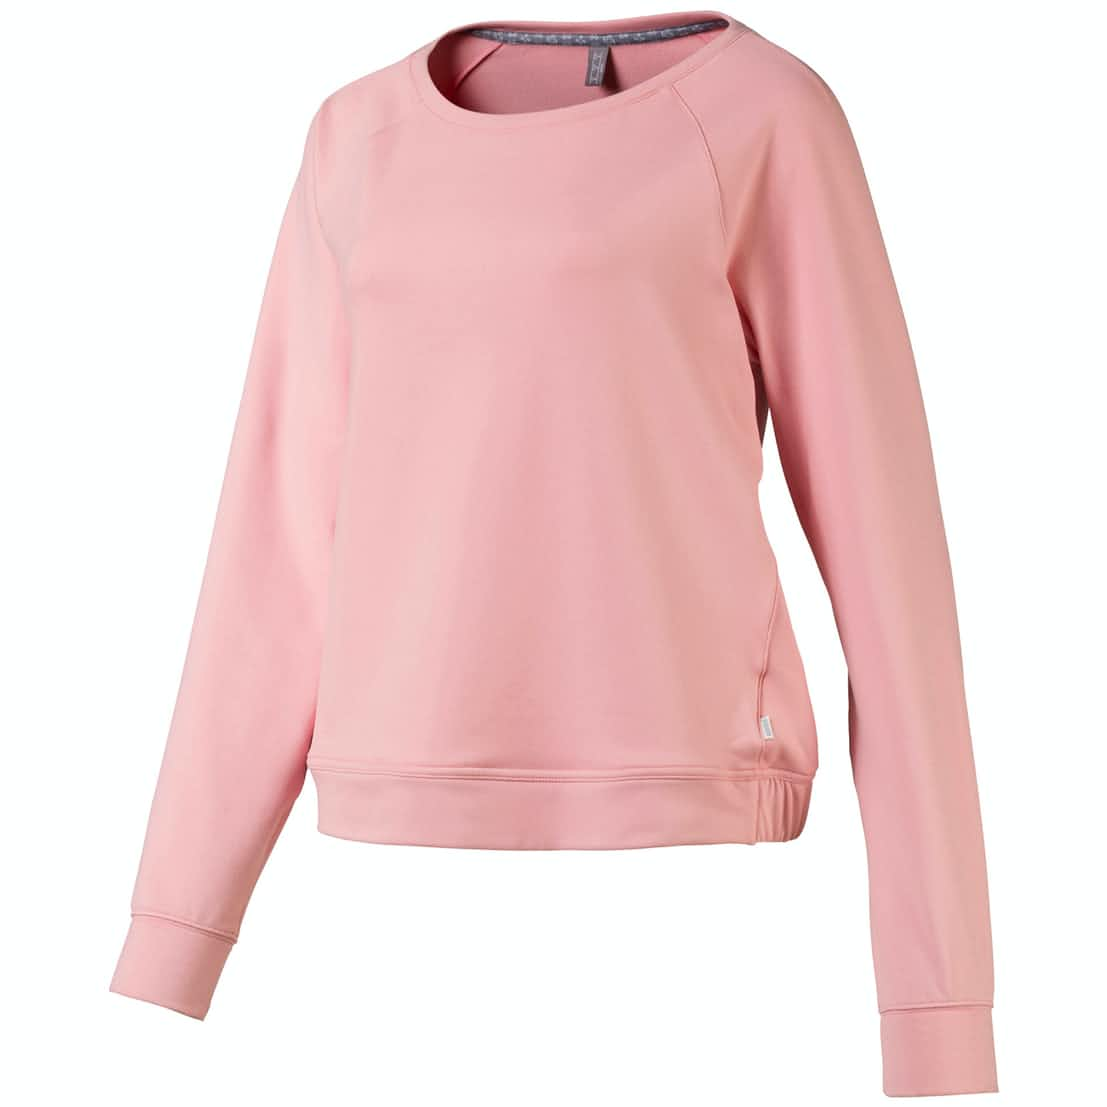 Womens Crewneck Fleece Bridal Rose - AW19